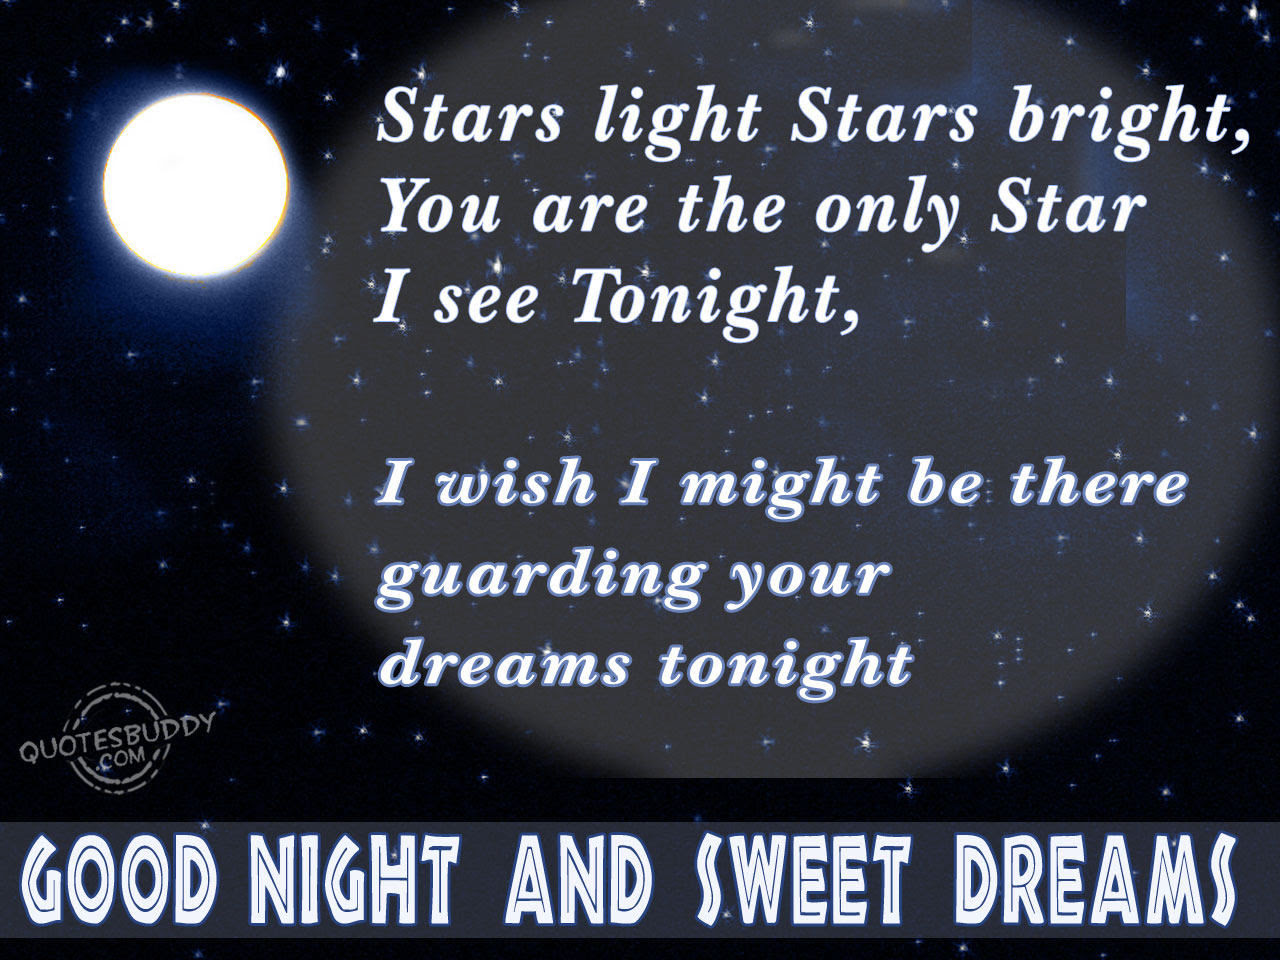 Goodnight And Sweet Dreams Pictures Photos And Images For Facebook